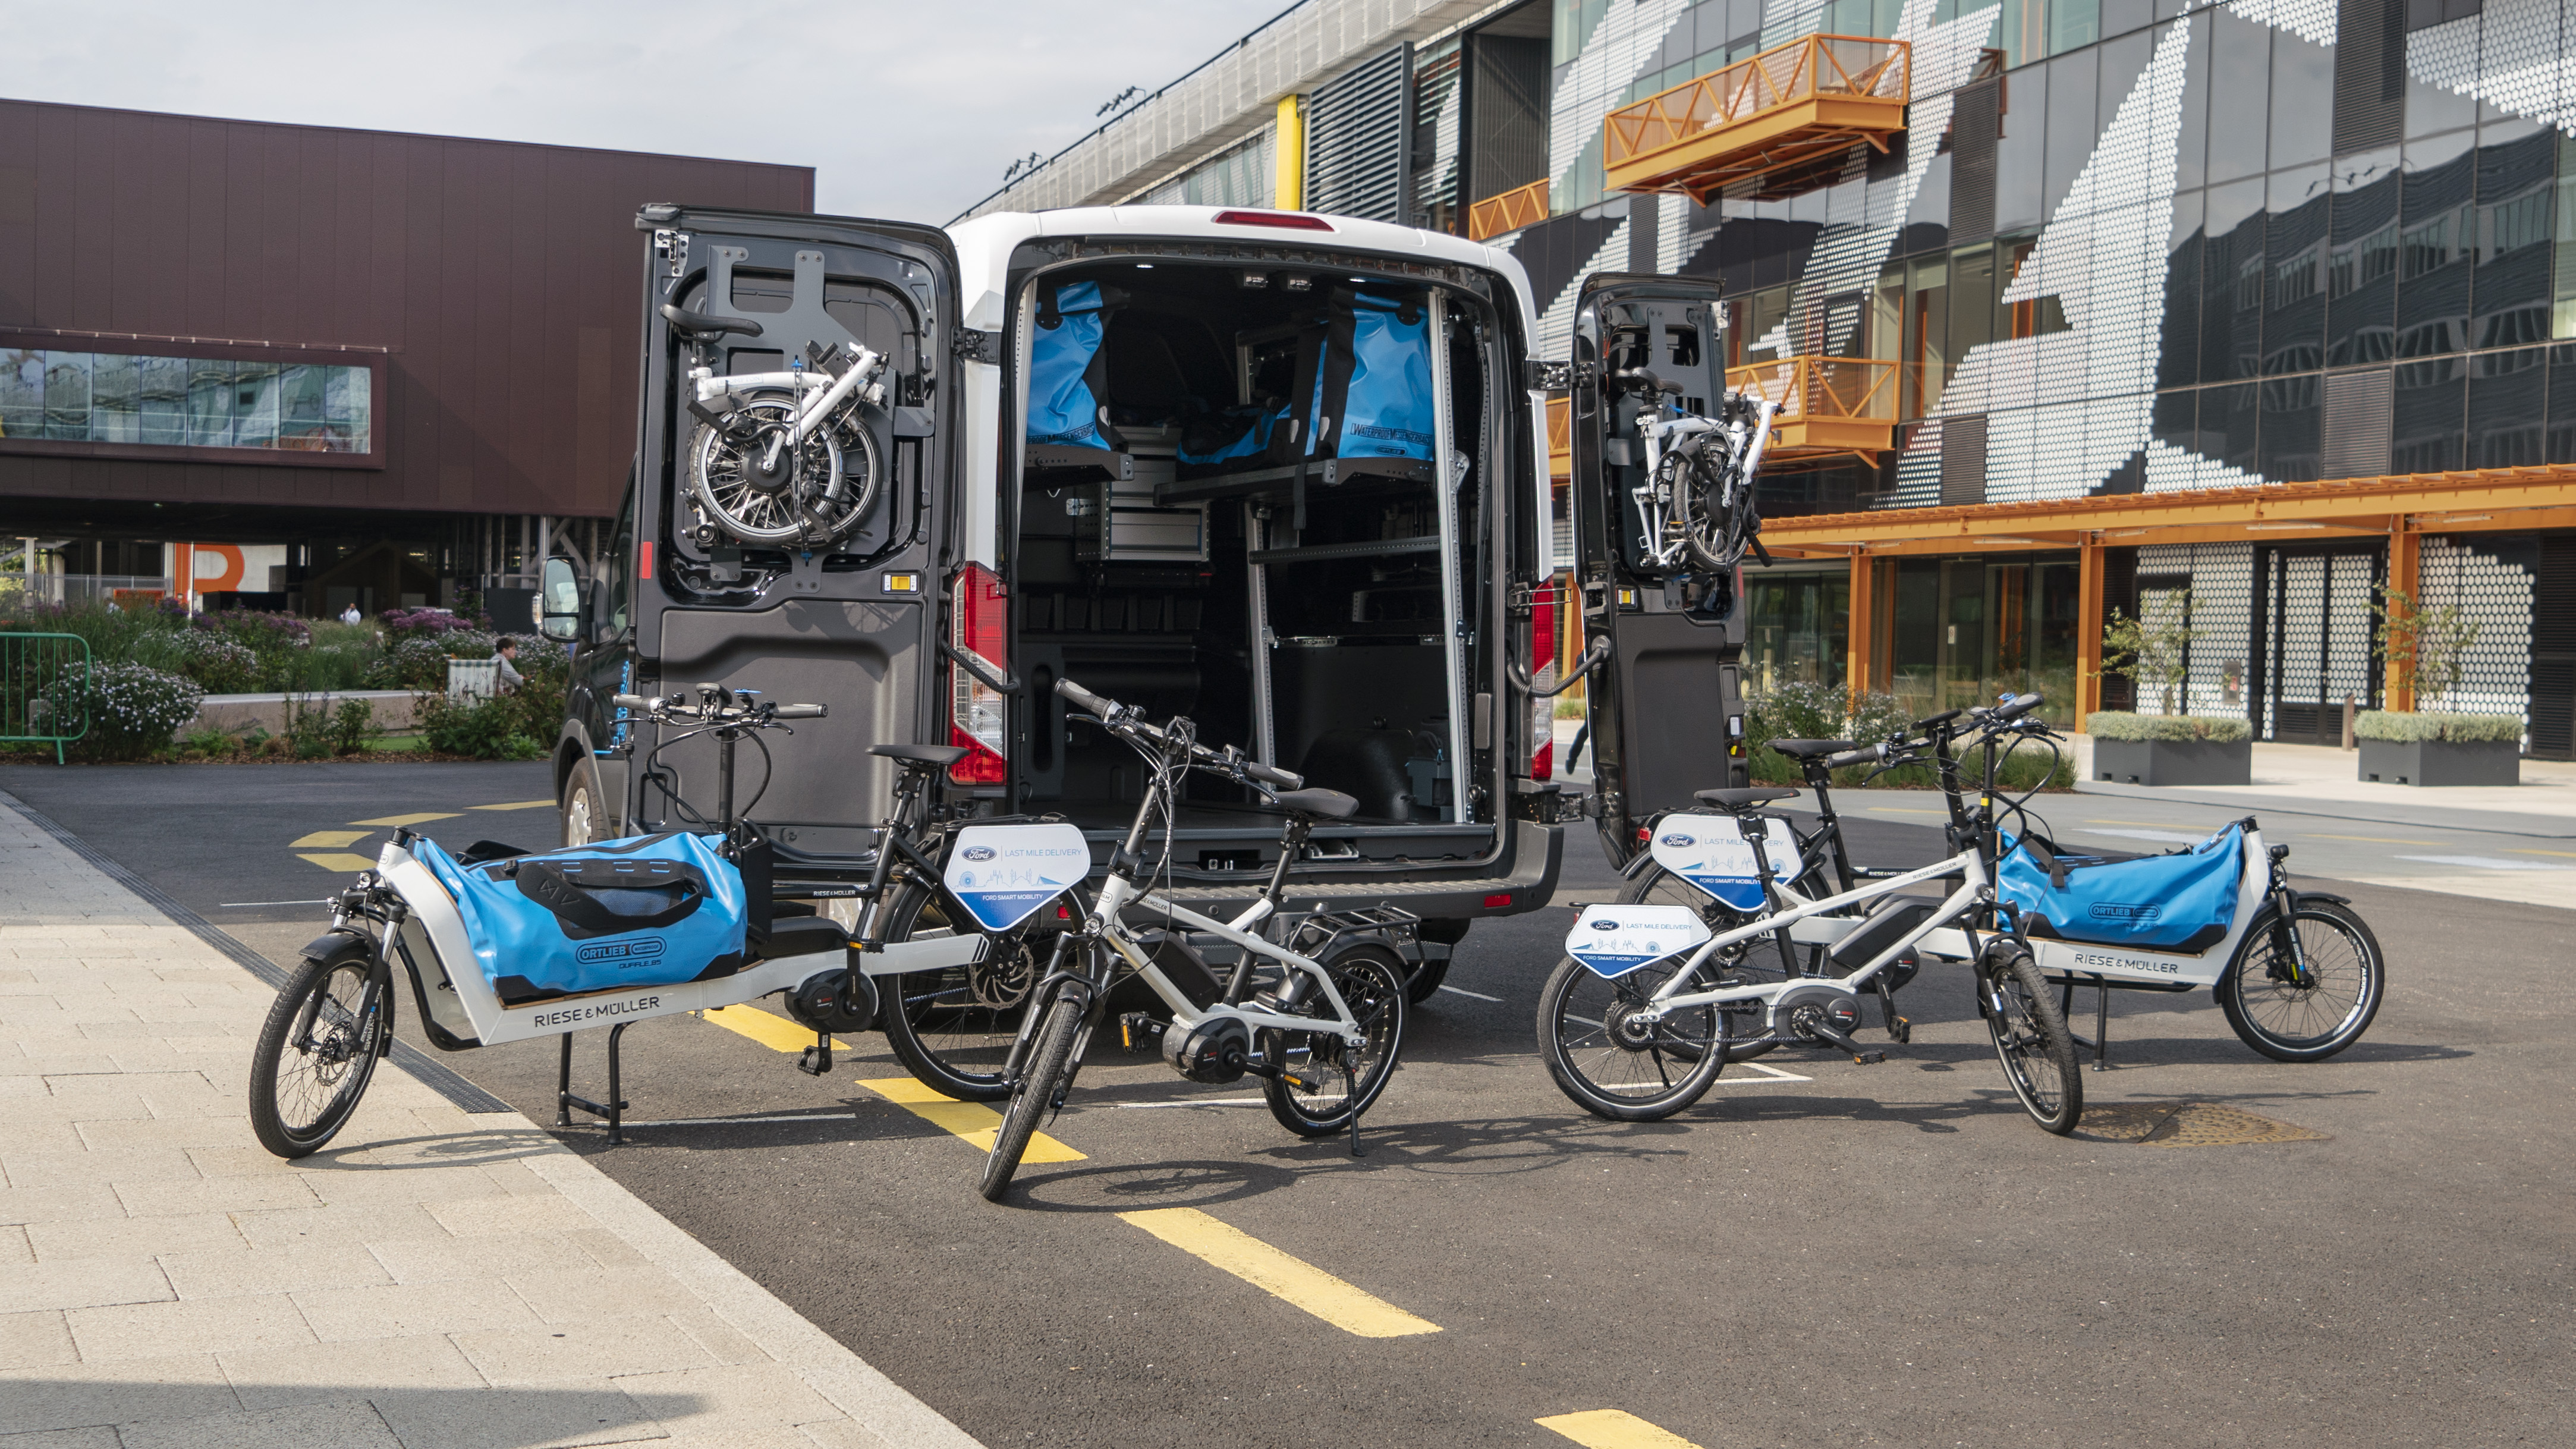 Ford trails last-mile delivery service in London